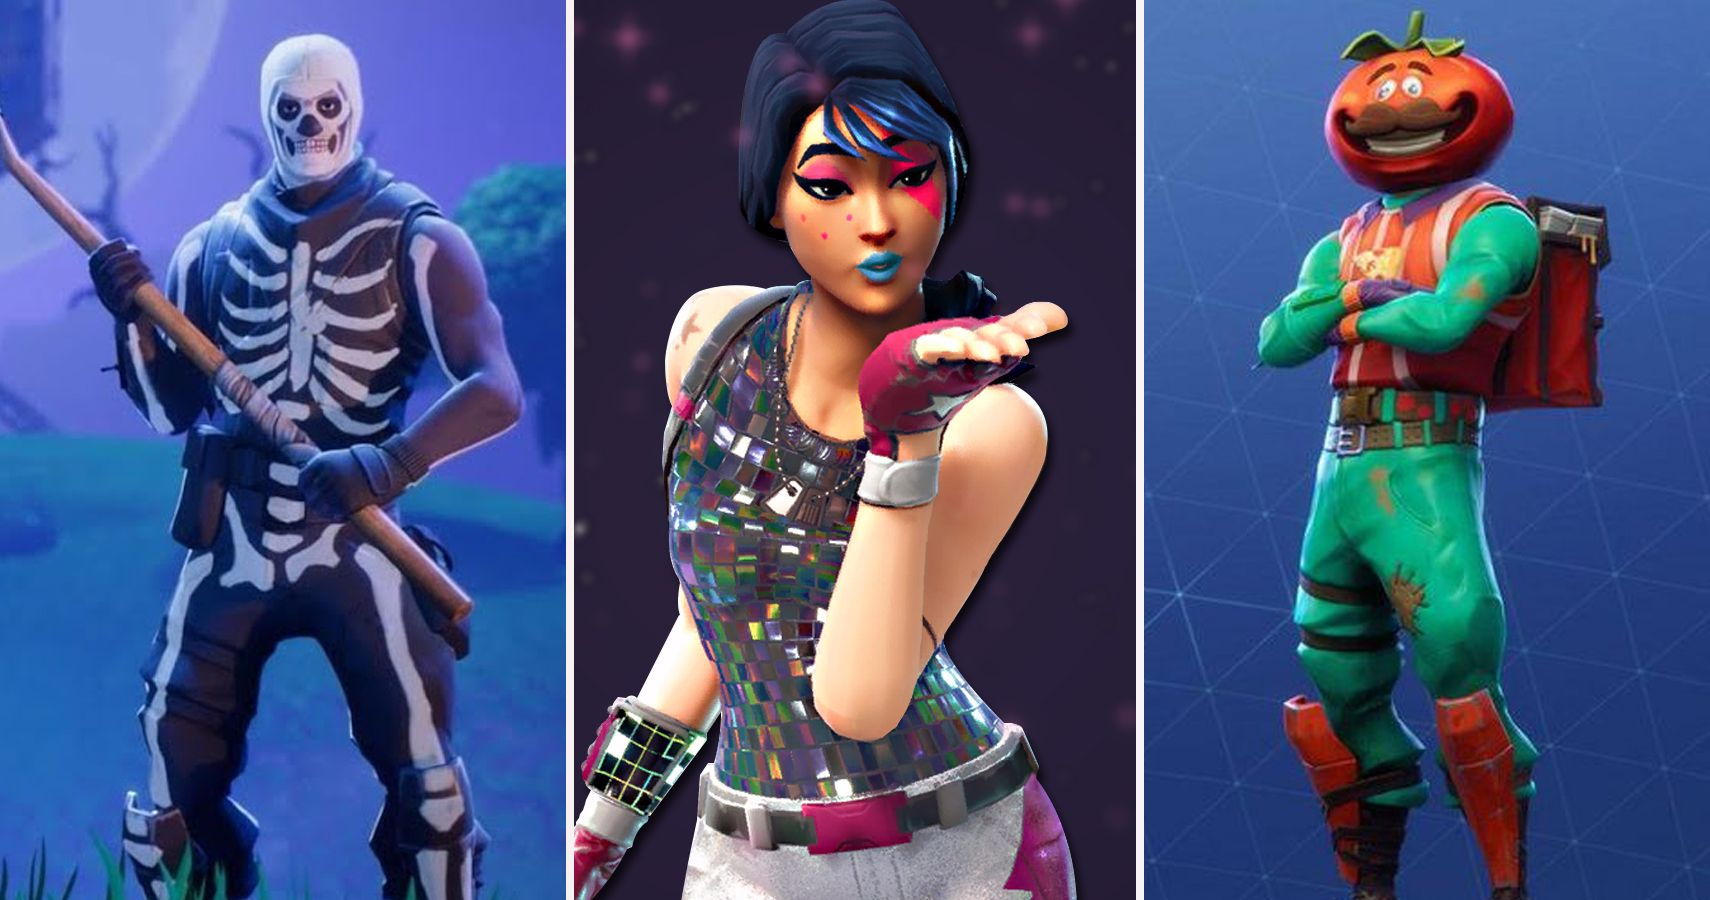 Fortnite 15 Skins That Make Characters Look Like Bosses